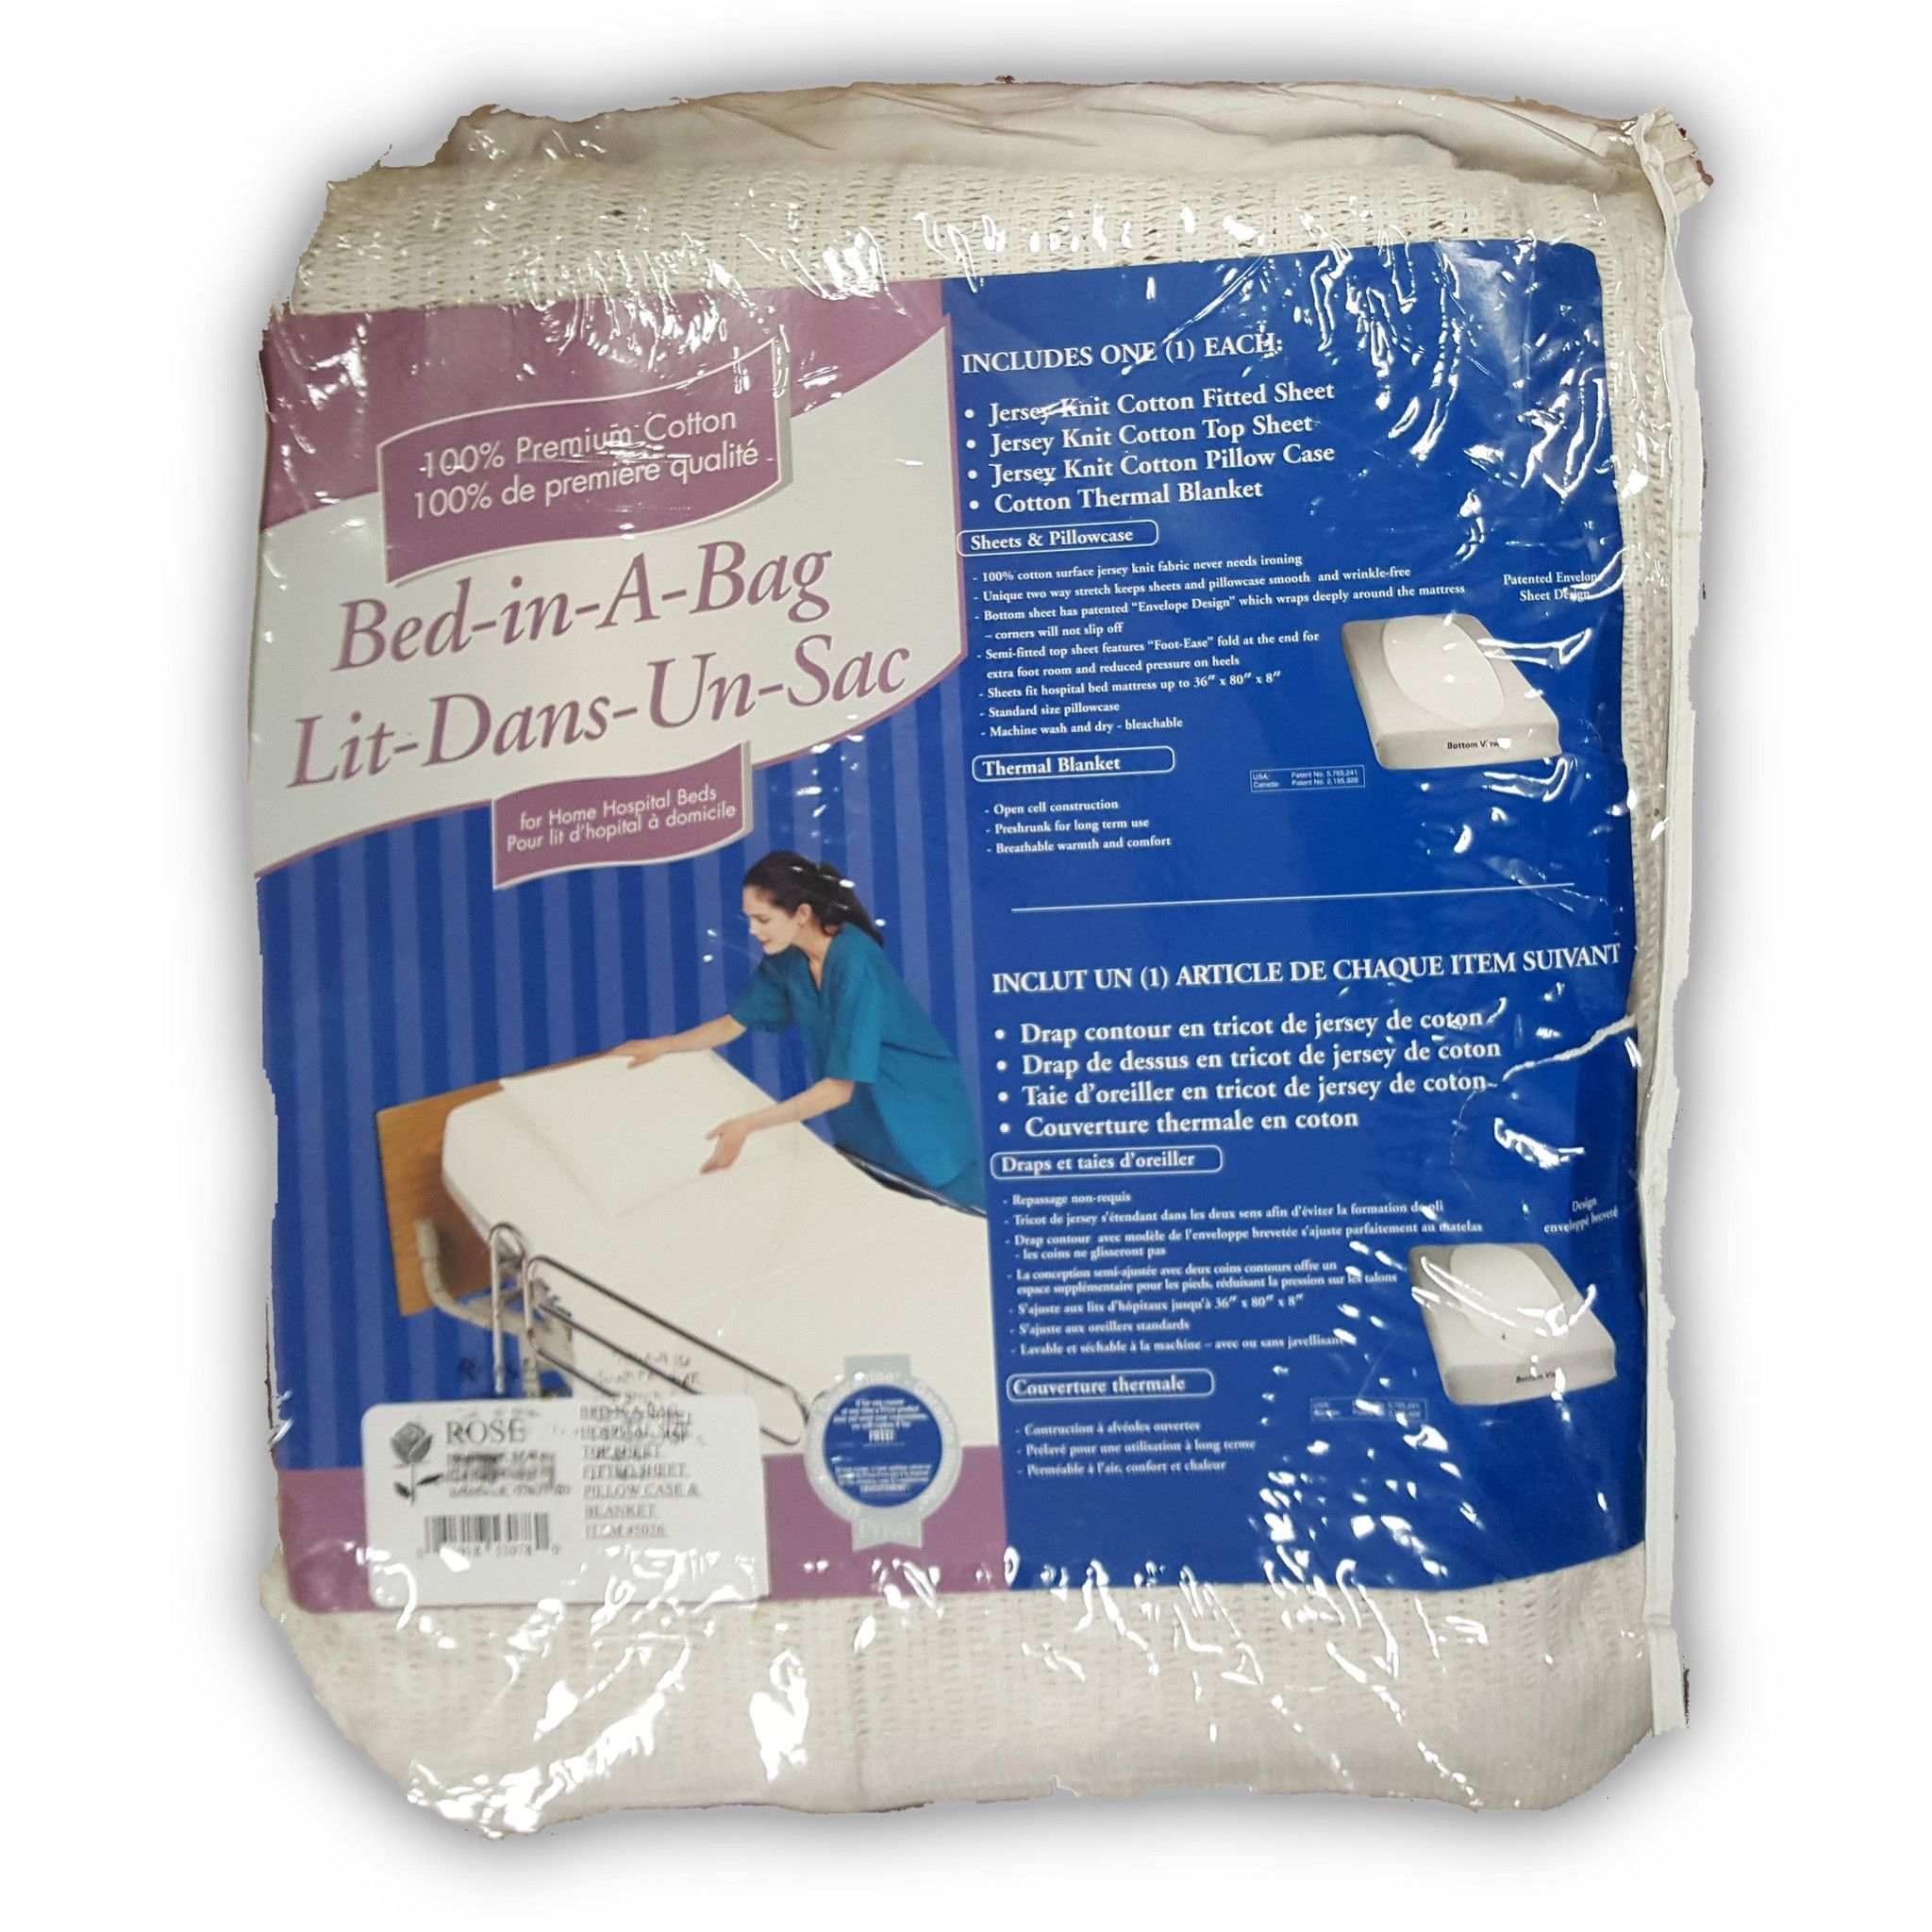 Cotton Bed In A Bag Kit For Home Hospital Beds Cotton Bed In A Bag Sheet  And Blanket Kit From PRO2 Medical Supplies Is Made For Home Hospital Beds.